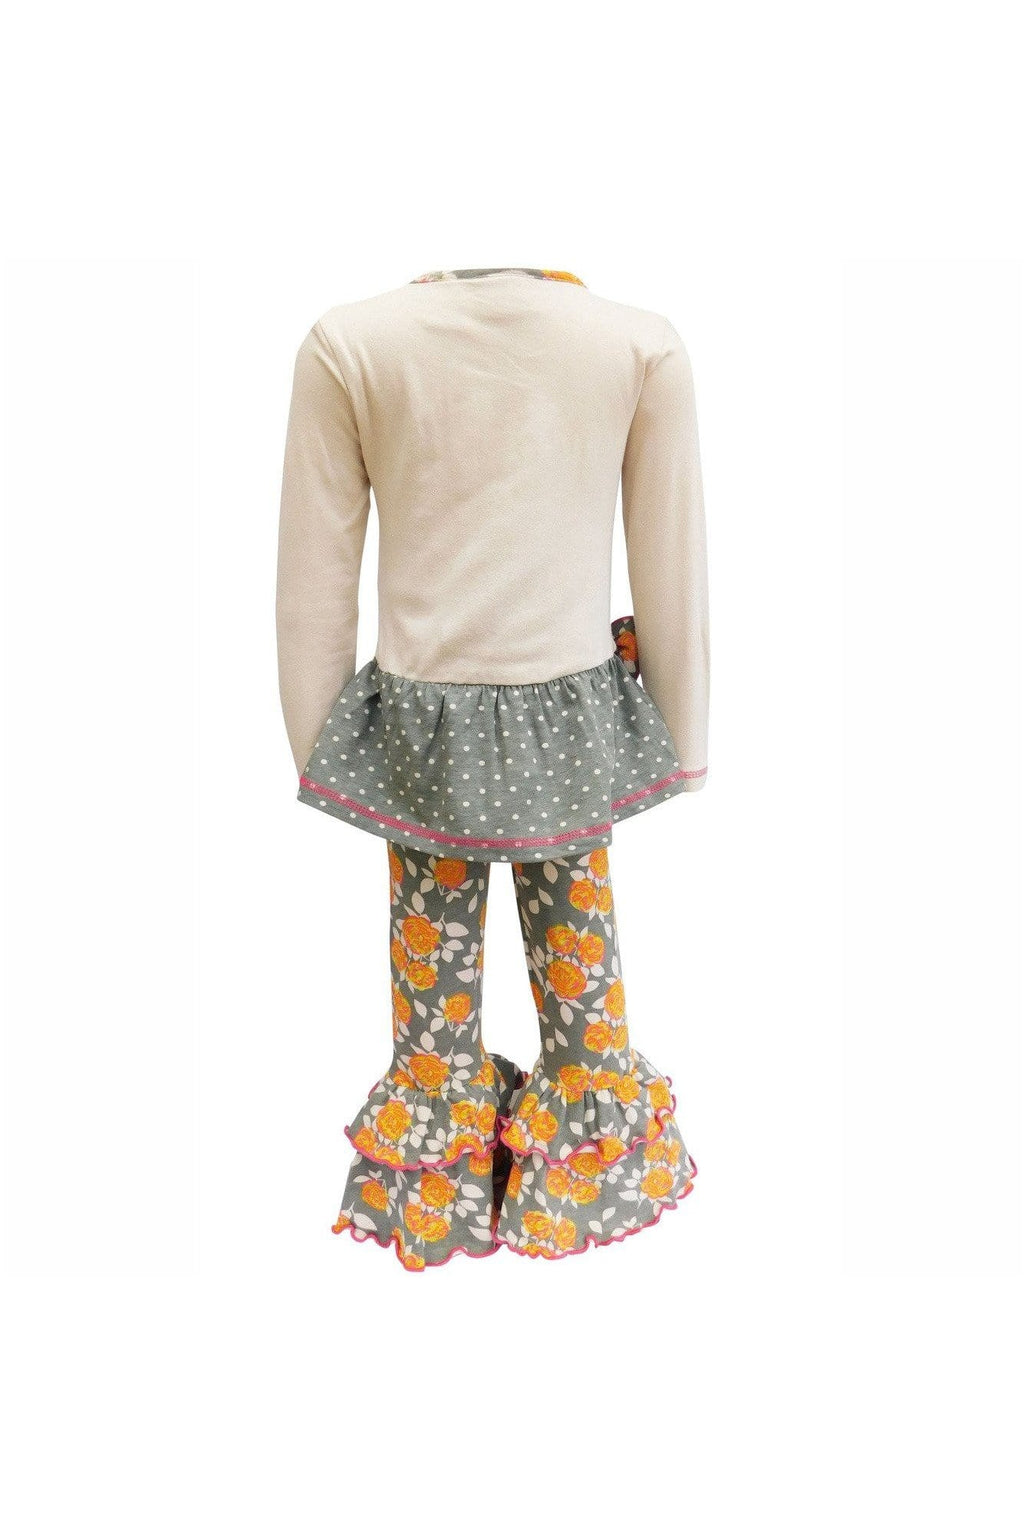 AnnLoren Girls Boutique Fall Floral Polka Dots Dress & Ruffle Pant Clothing Set - Himelhoch's